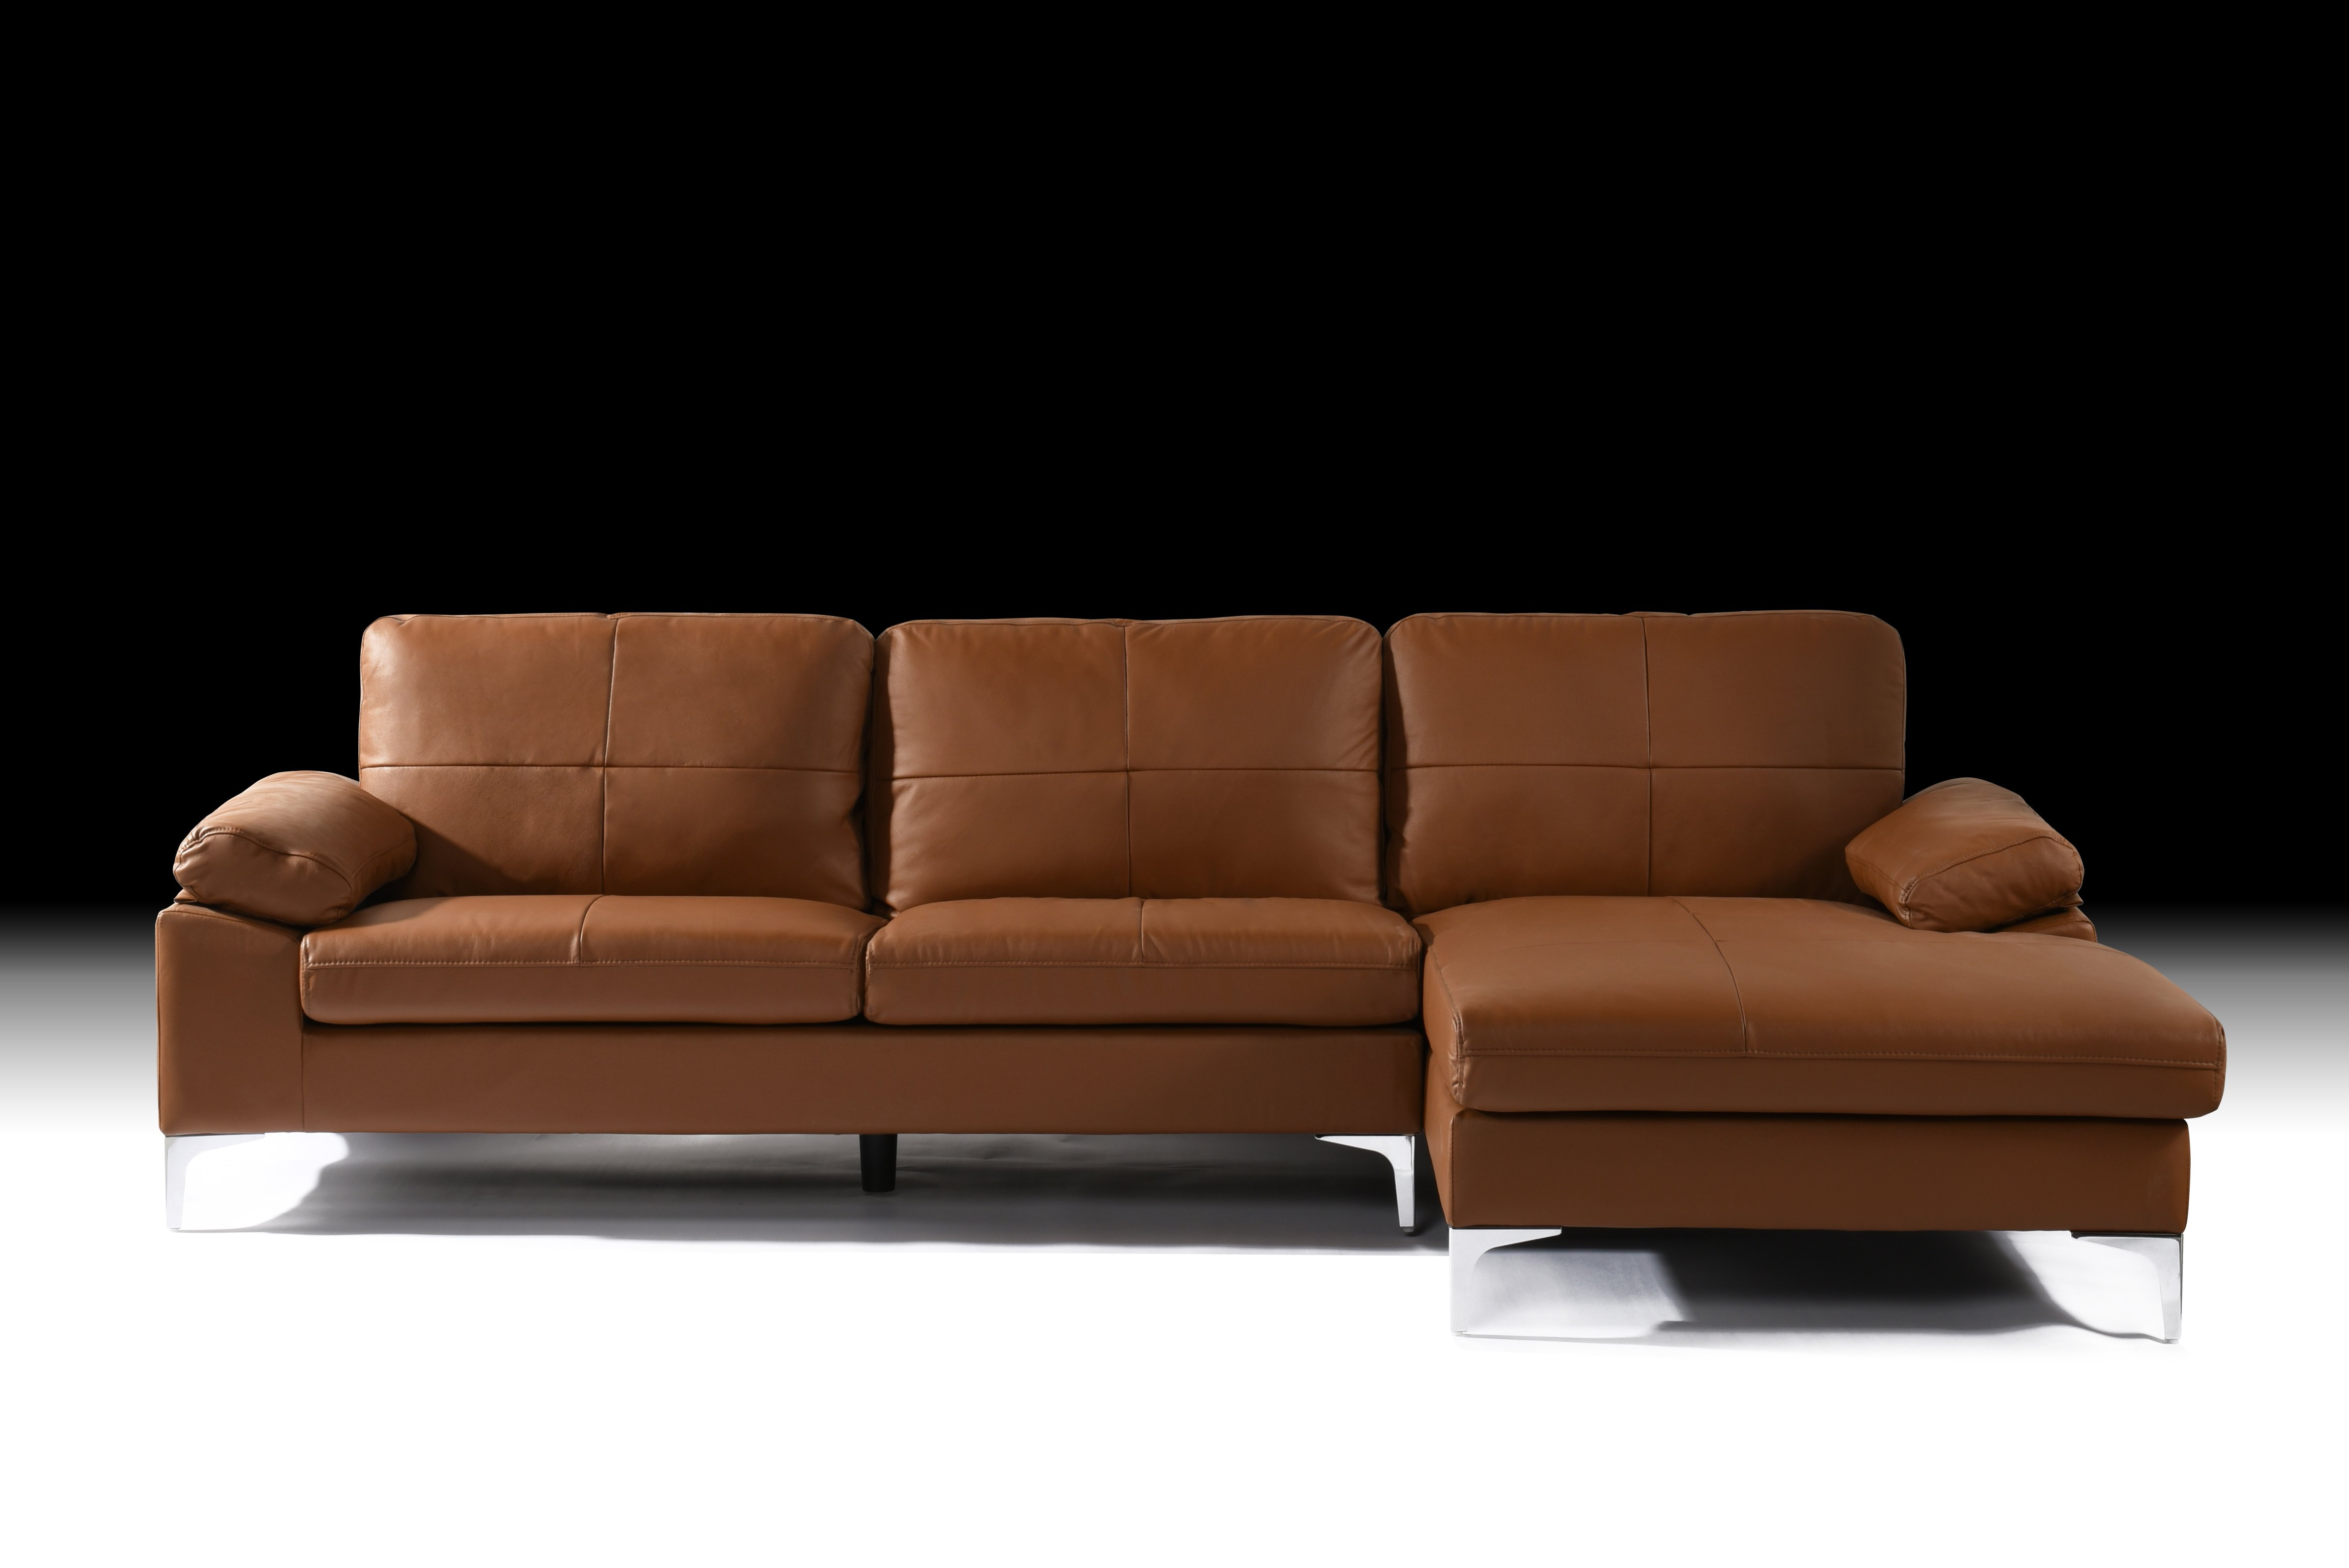 Camel Large Leather Sectional Sofa, L-Shape Couch with ...